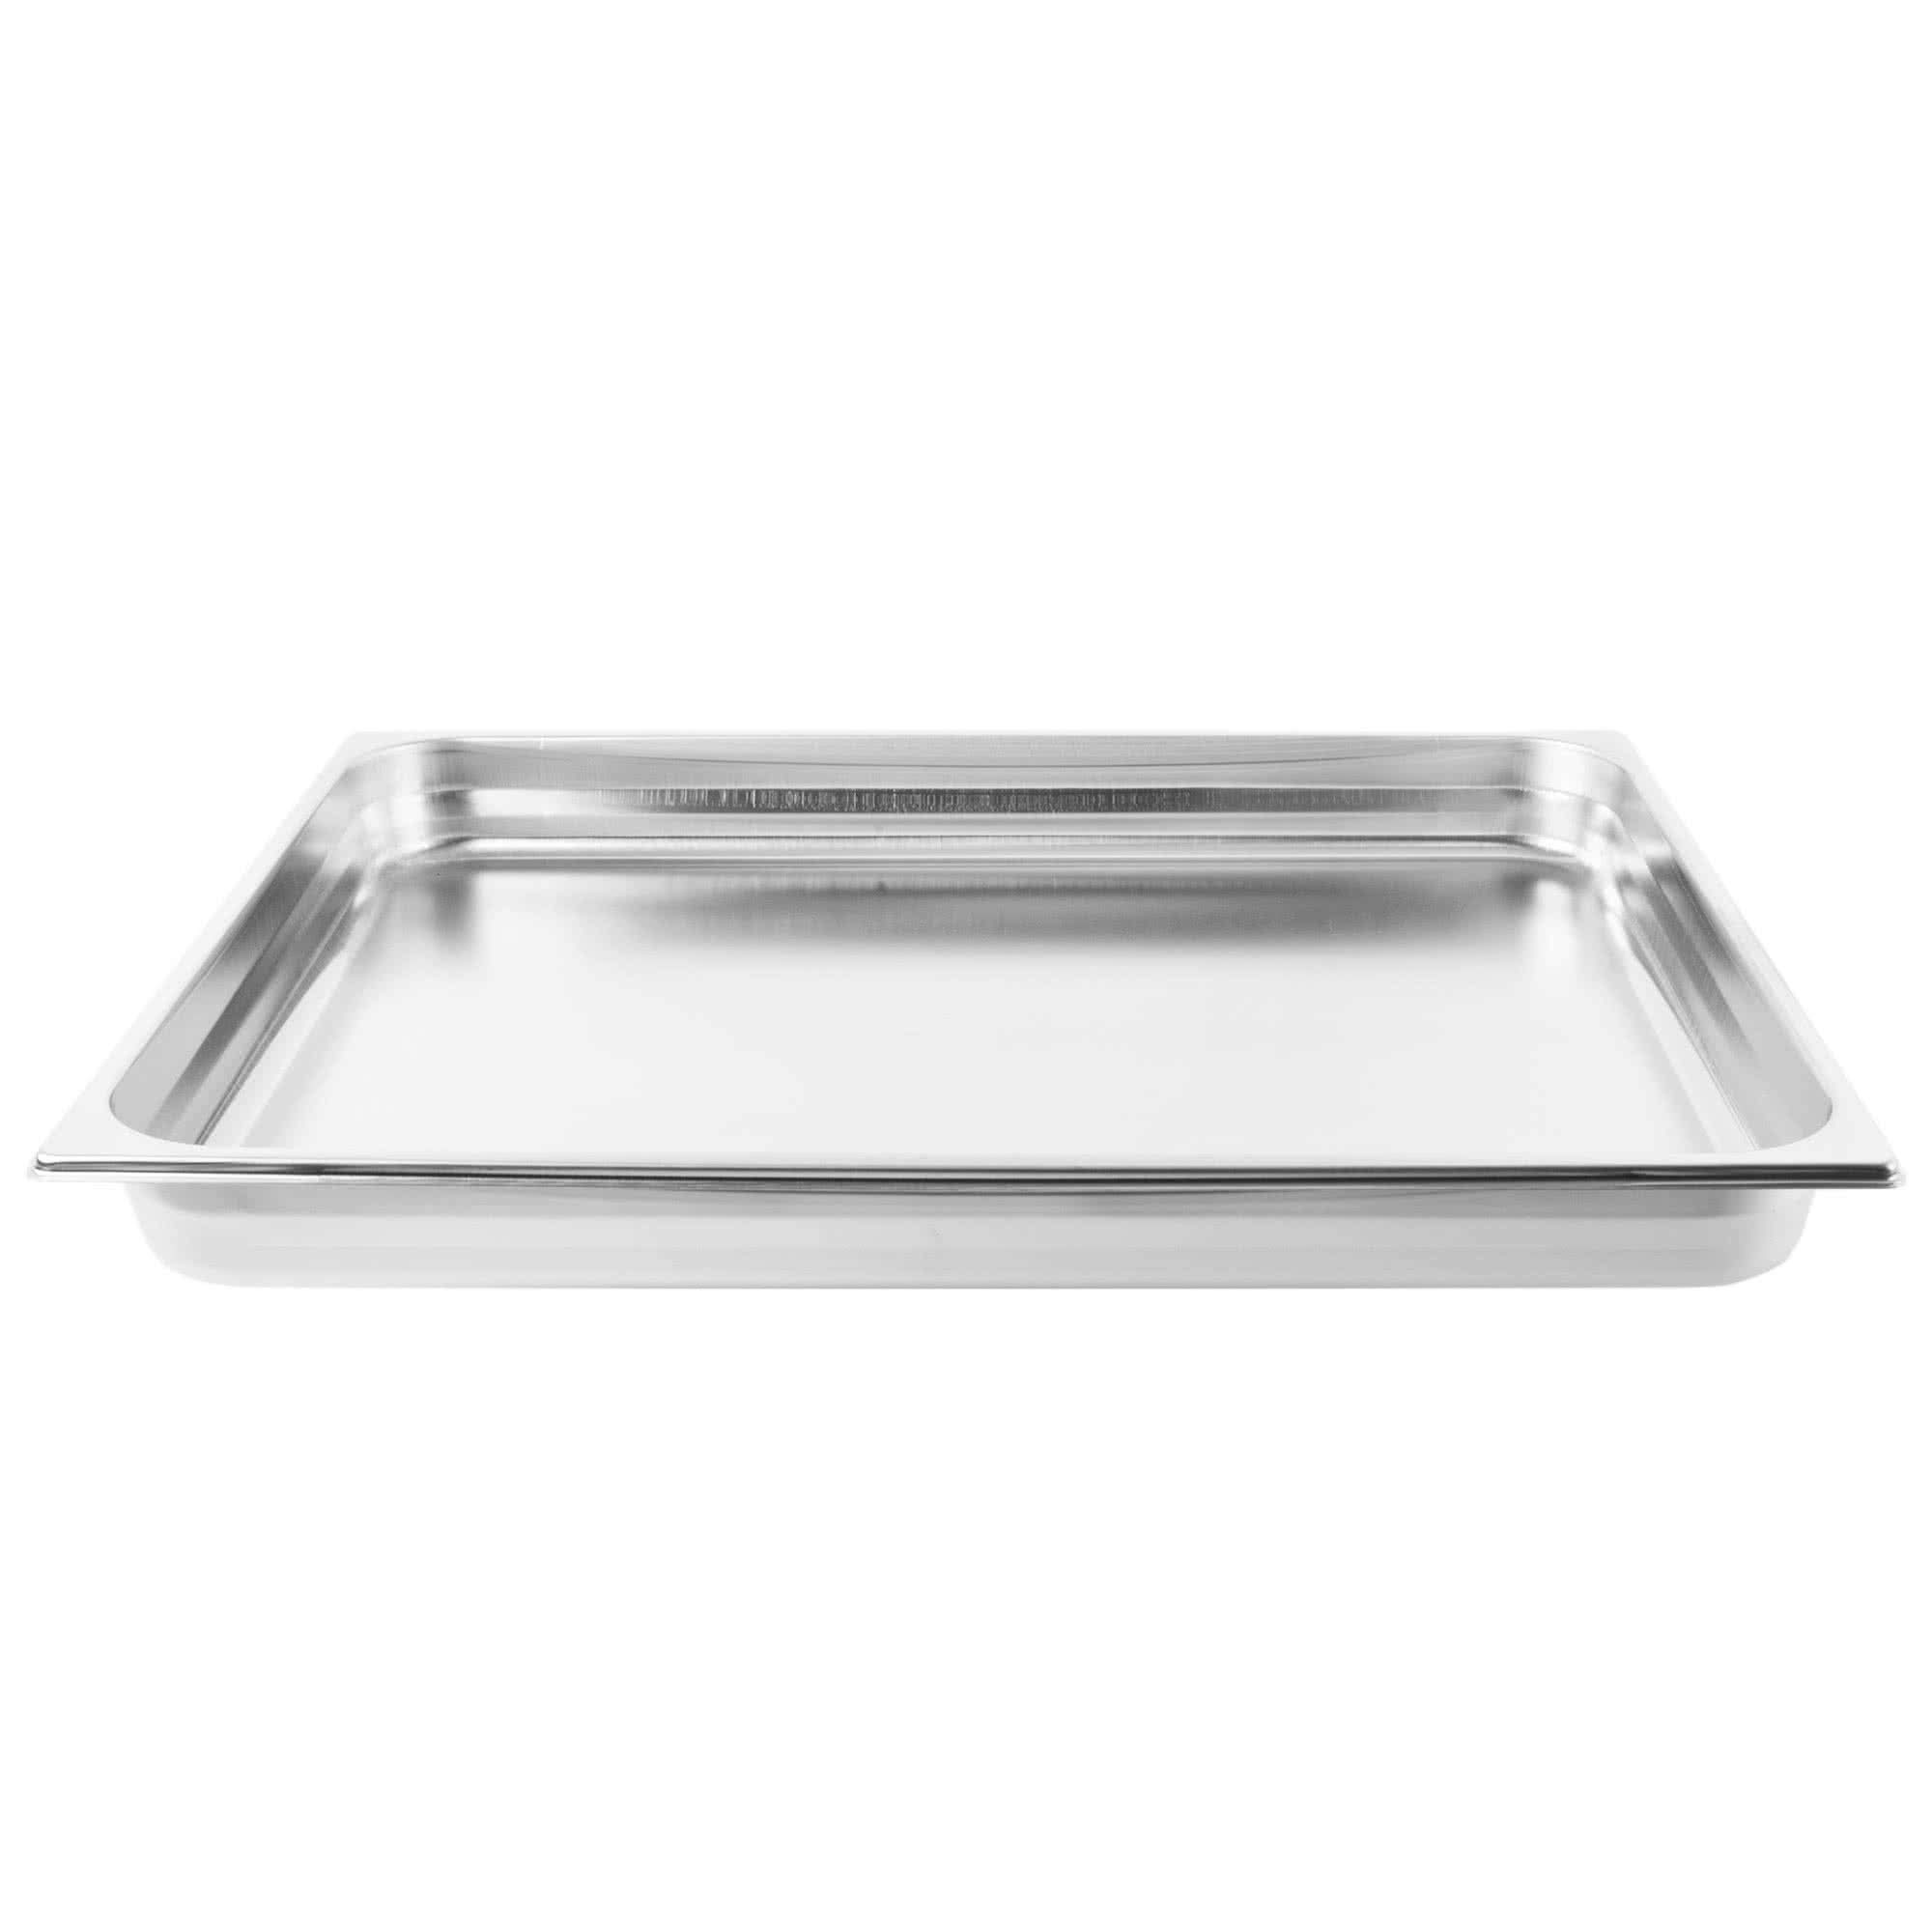 TableTop King V210651 Double Wide Stainless Steel Steam Table/Hotel Pan - 2 1/2'' Deep by TableTop King